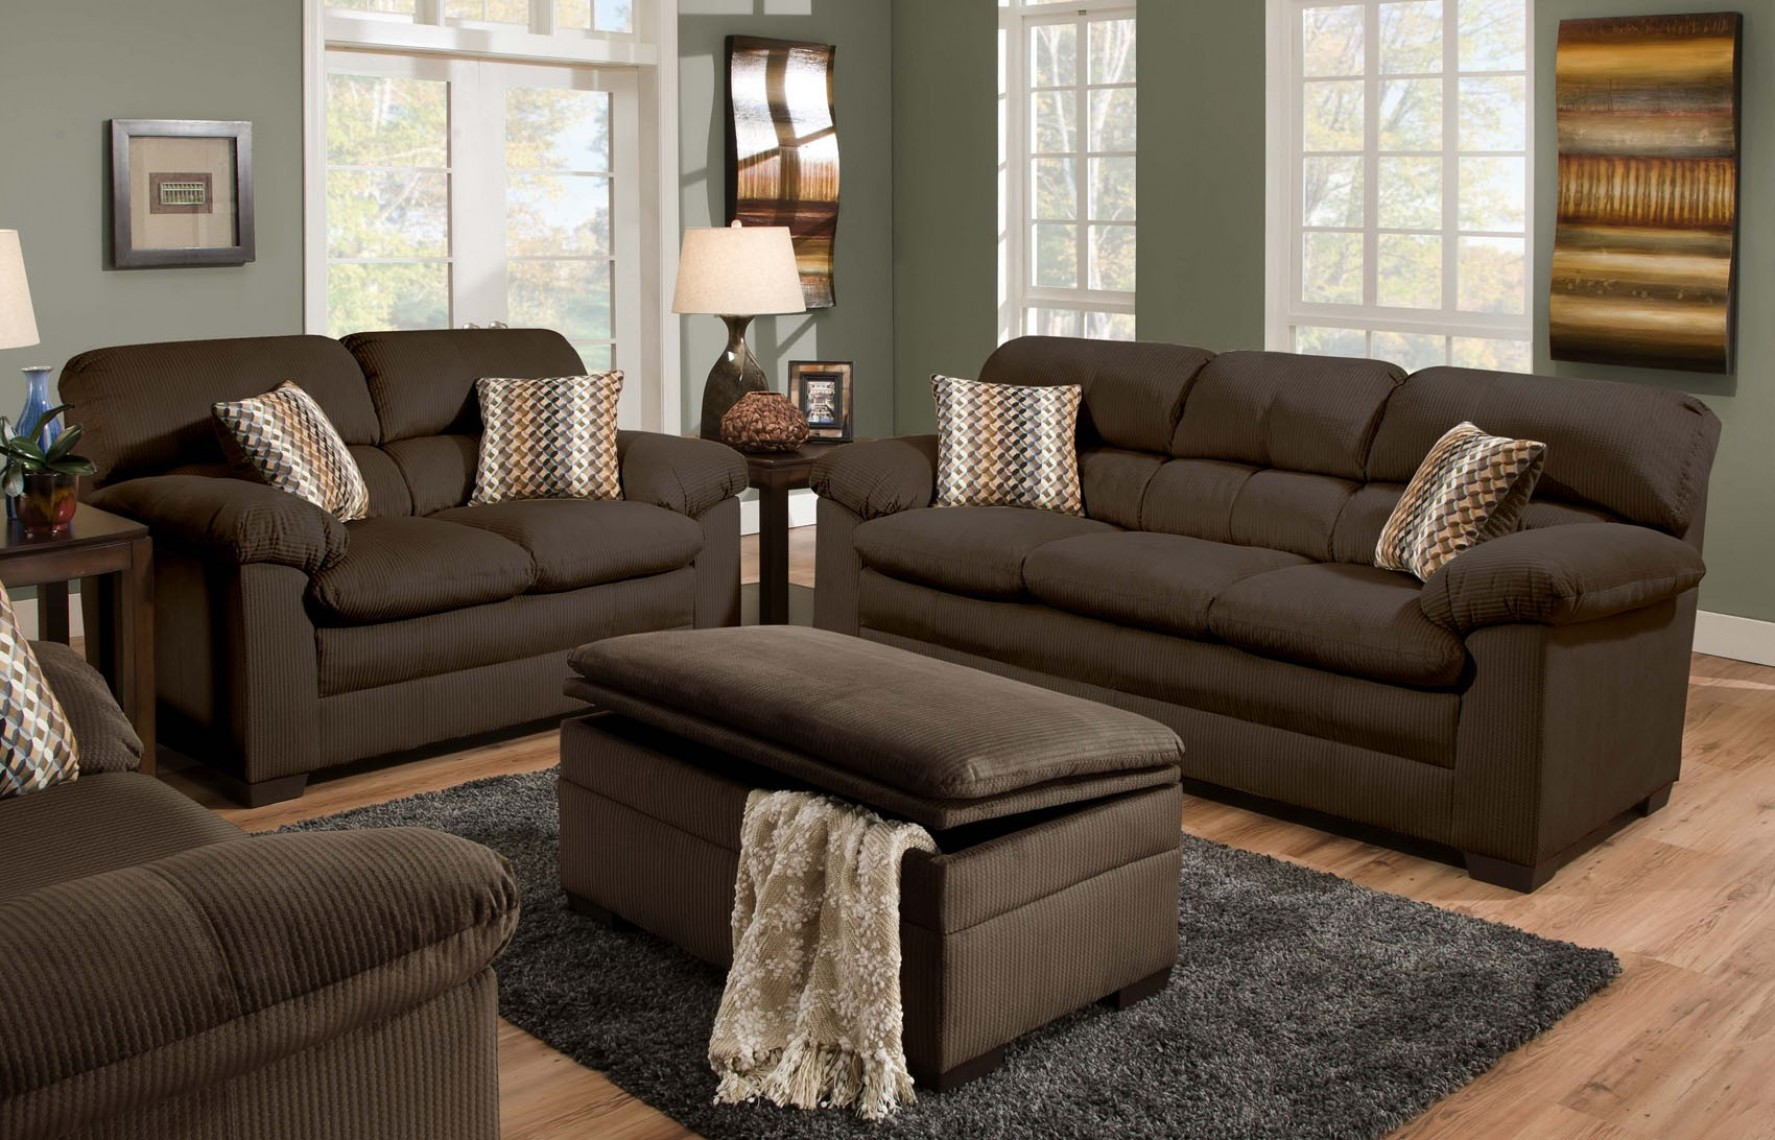 Magnificent Chocolate Brown Sofa And Loveseat 91 About Remodel Living Room Sofa Inspiration with Chocolate Brown Sofa And Loveseat